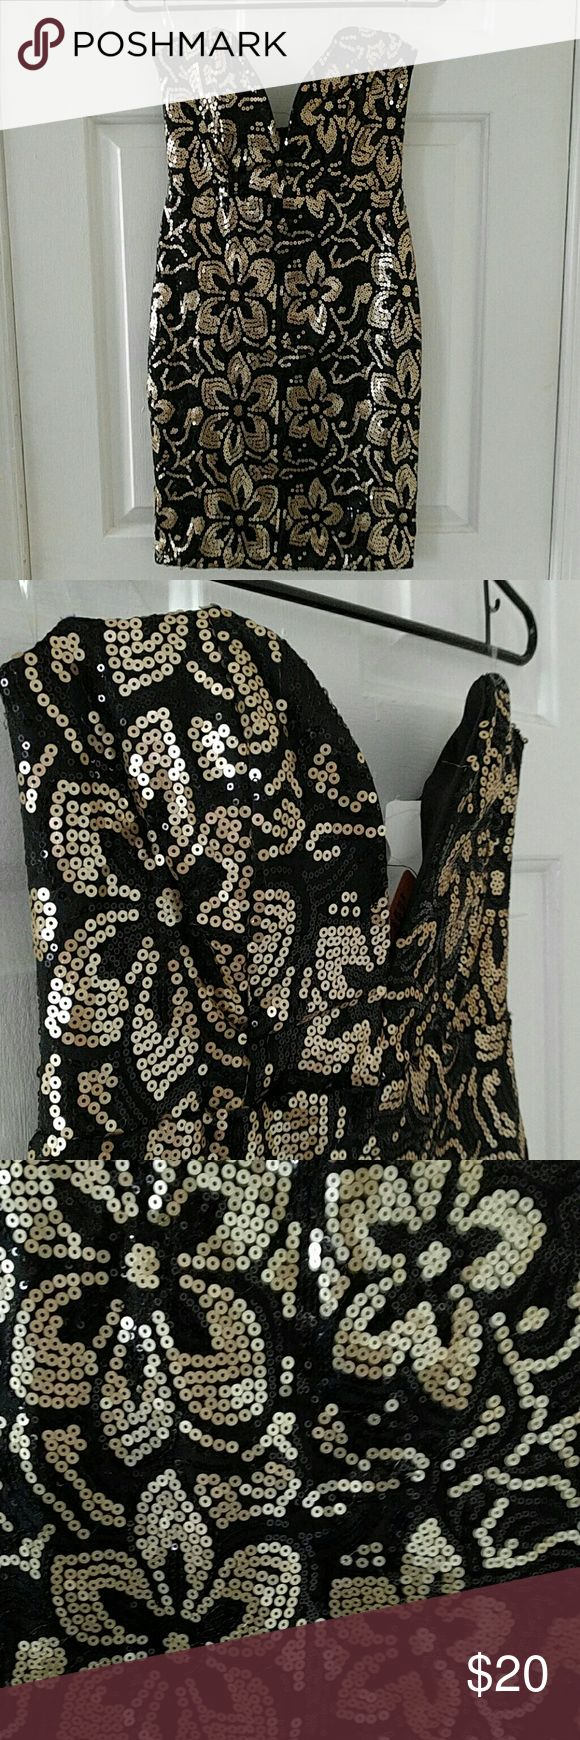 Strapless plunge sequin dress Black and matte gold floral sequin pattern. Plunge v neck reinforced with steel boning. Invisible zipper in back. A few sequins are starting to fall off. monaco Dresses Mini